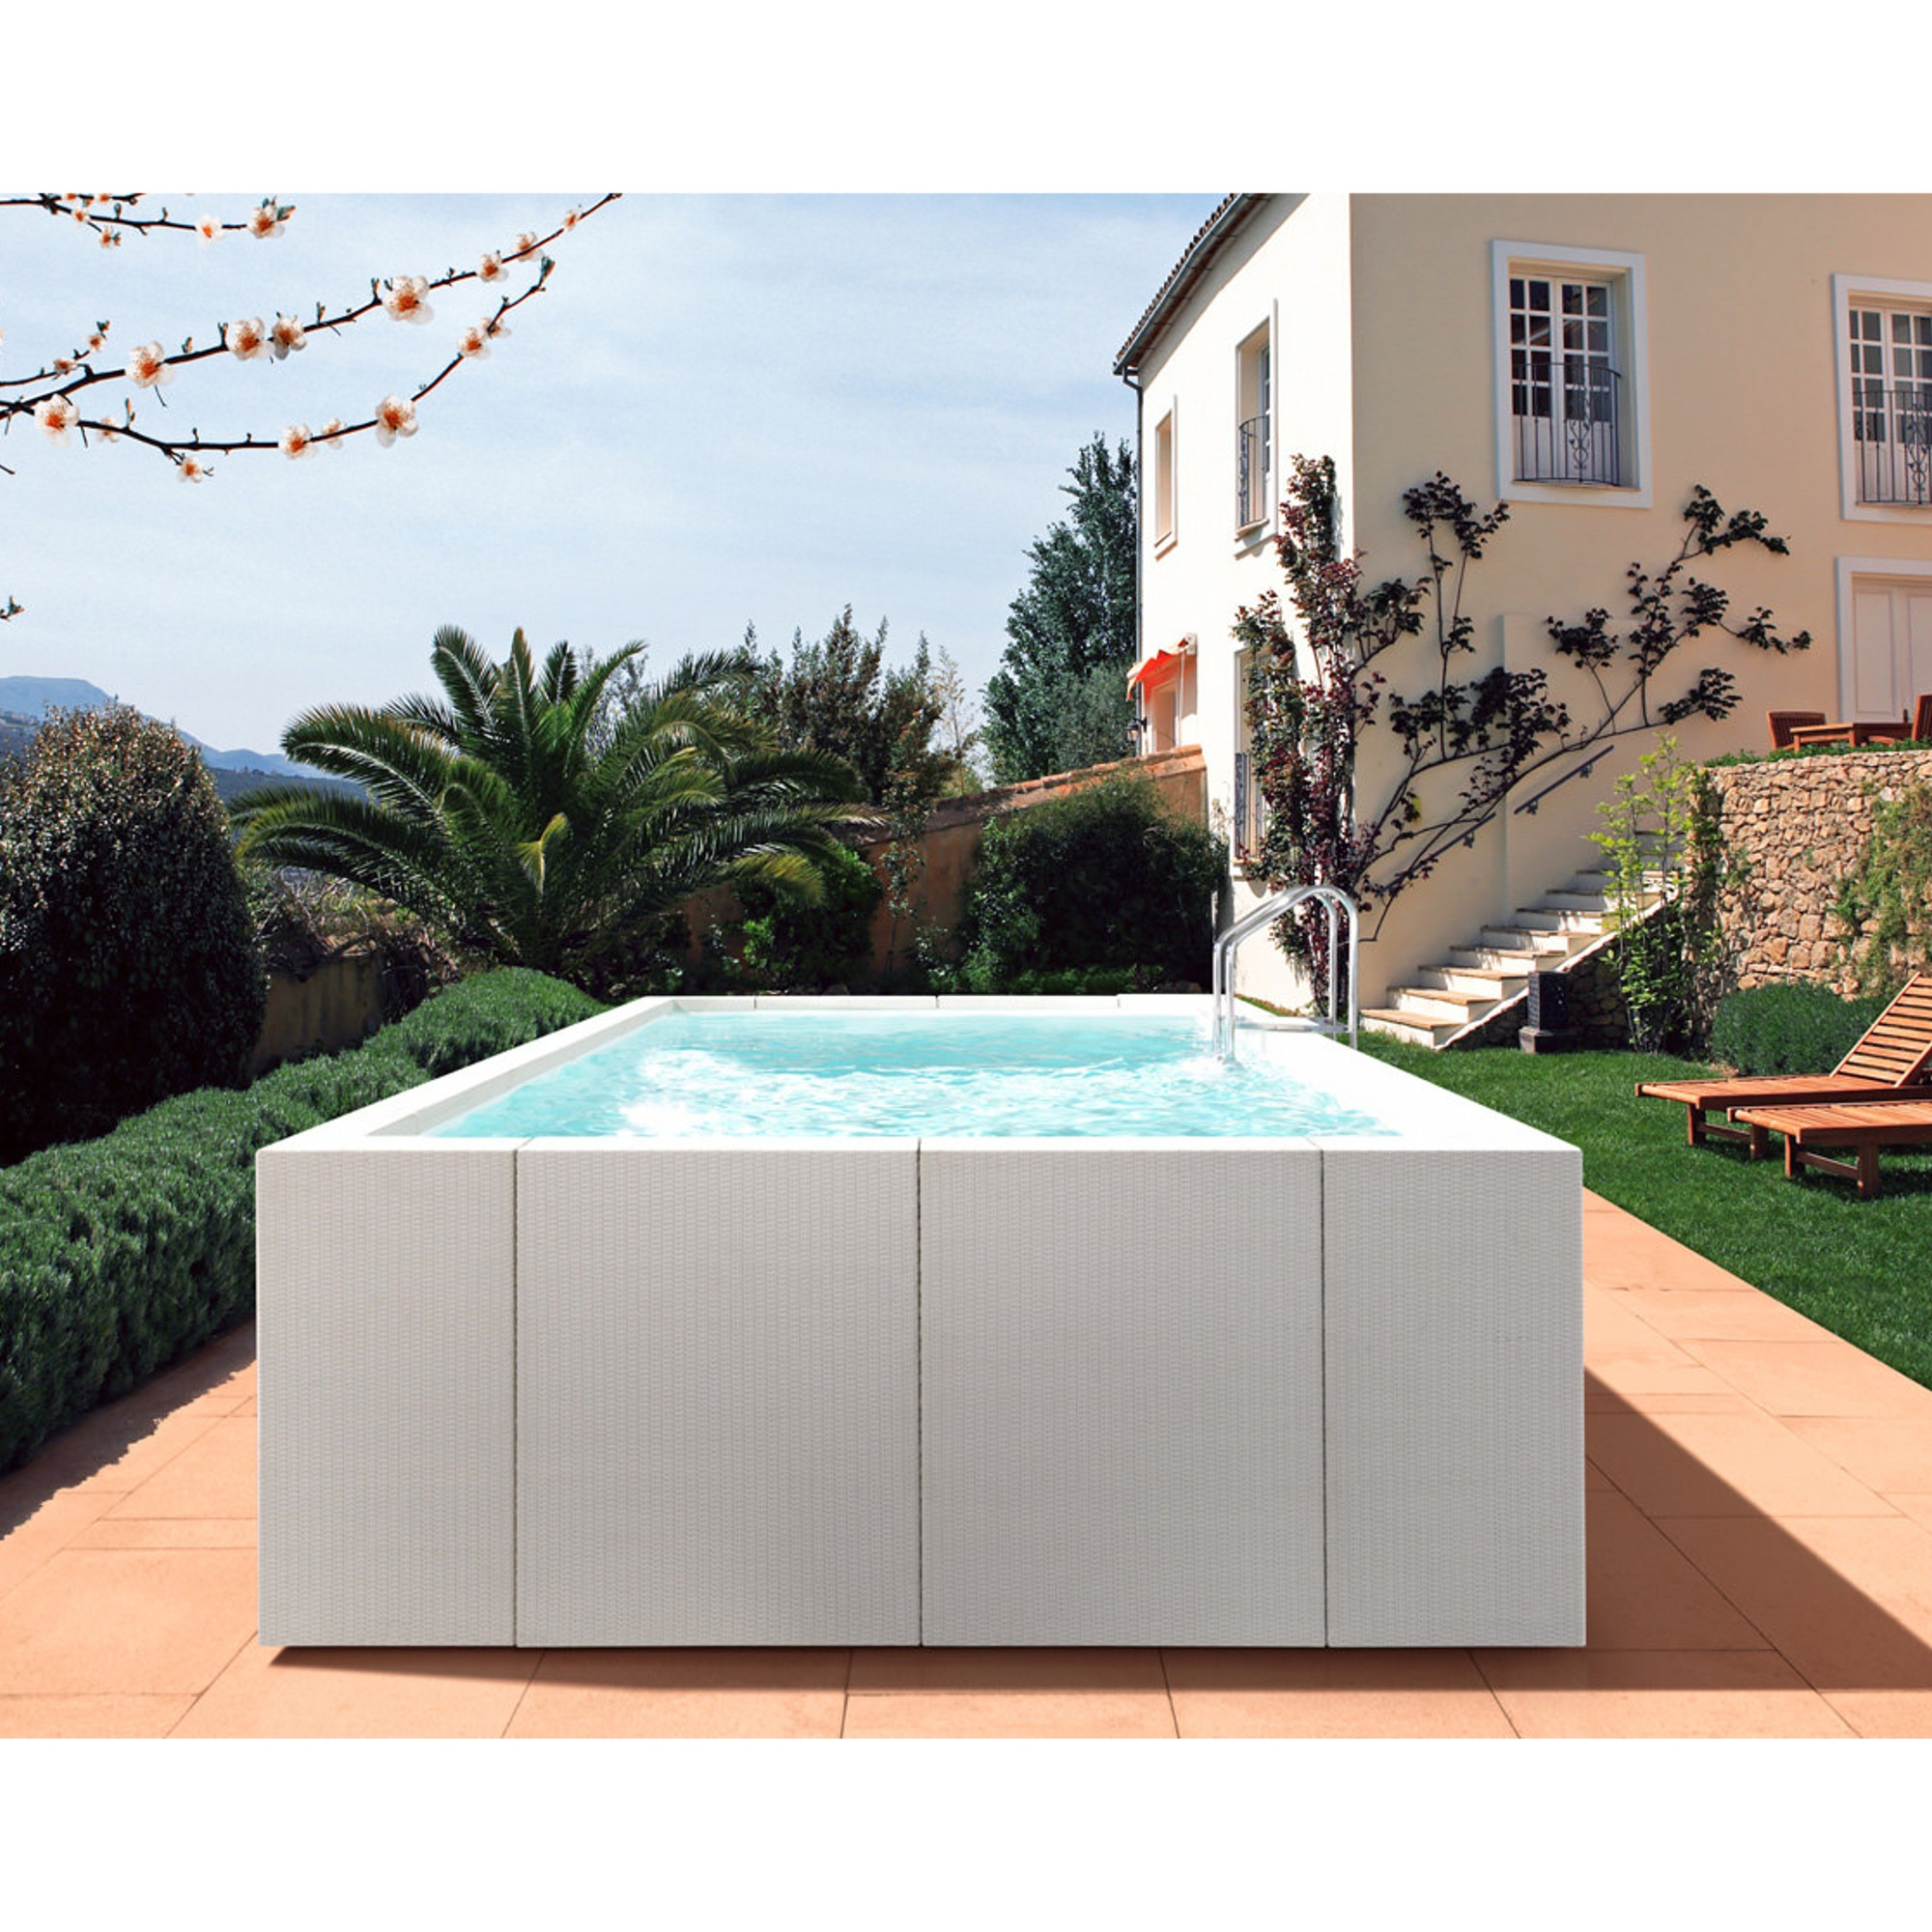 Piscine 4x6 Dolcevita Diva Jacuzzi And Minipools Wellness And Spa